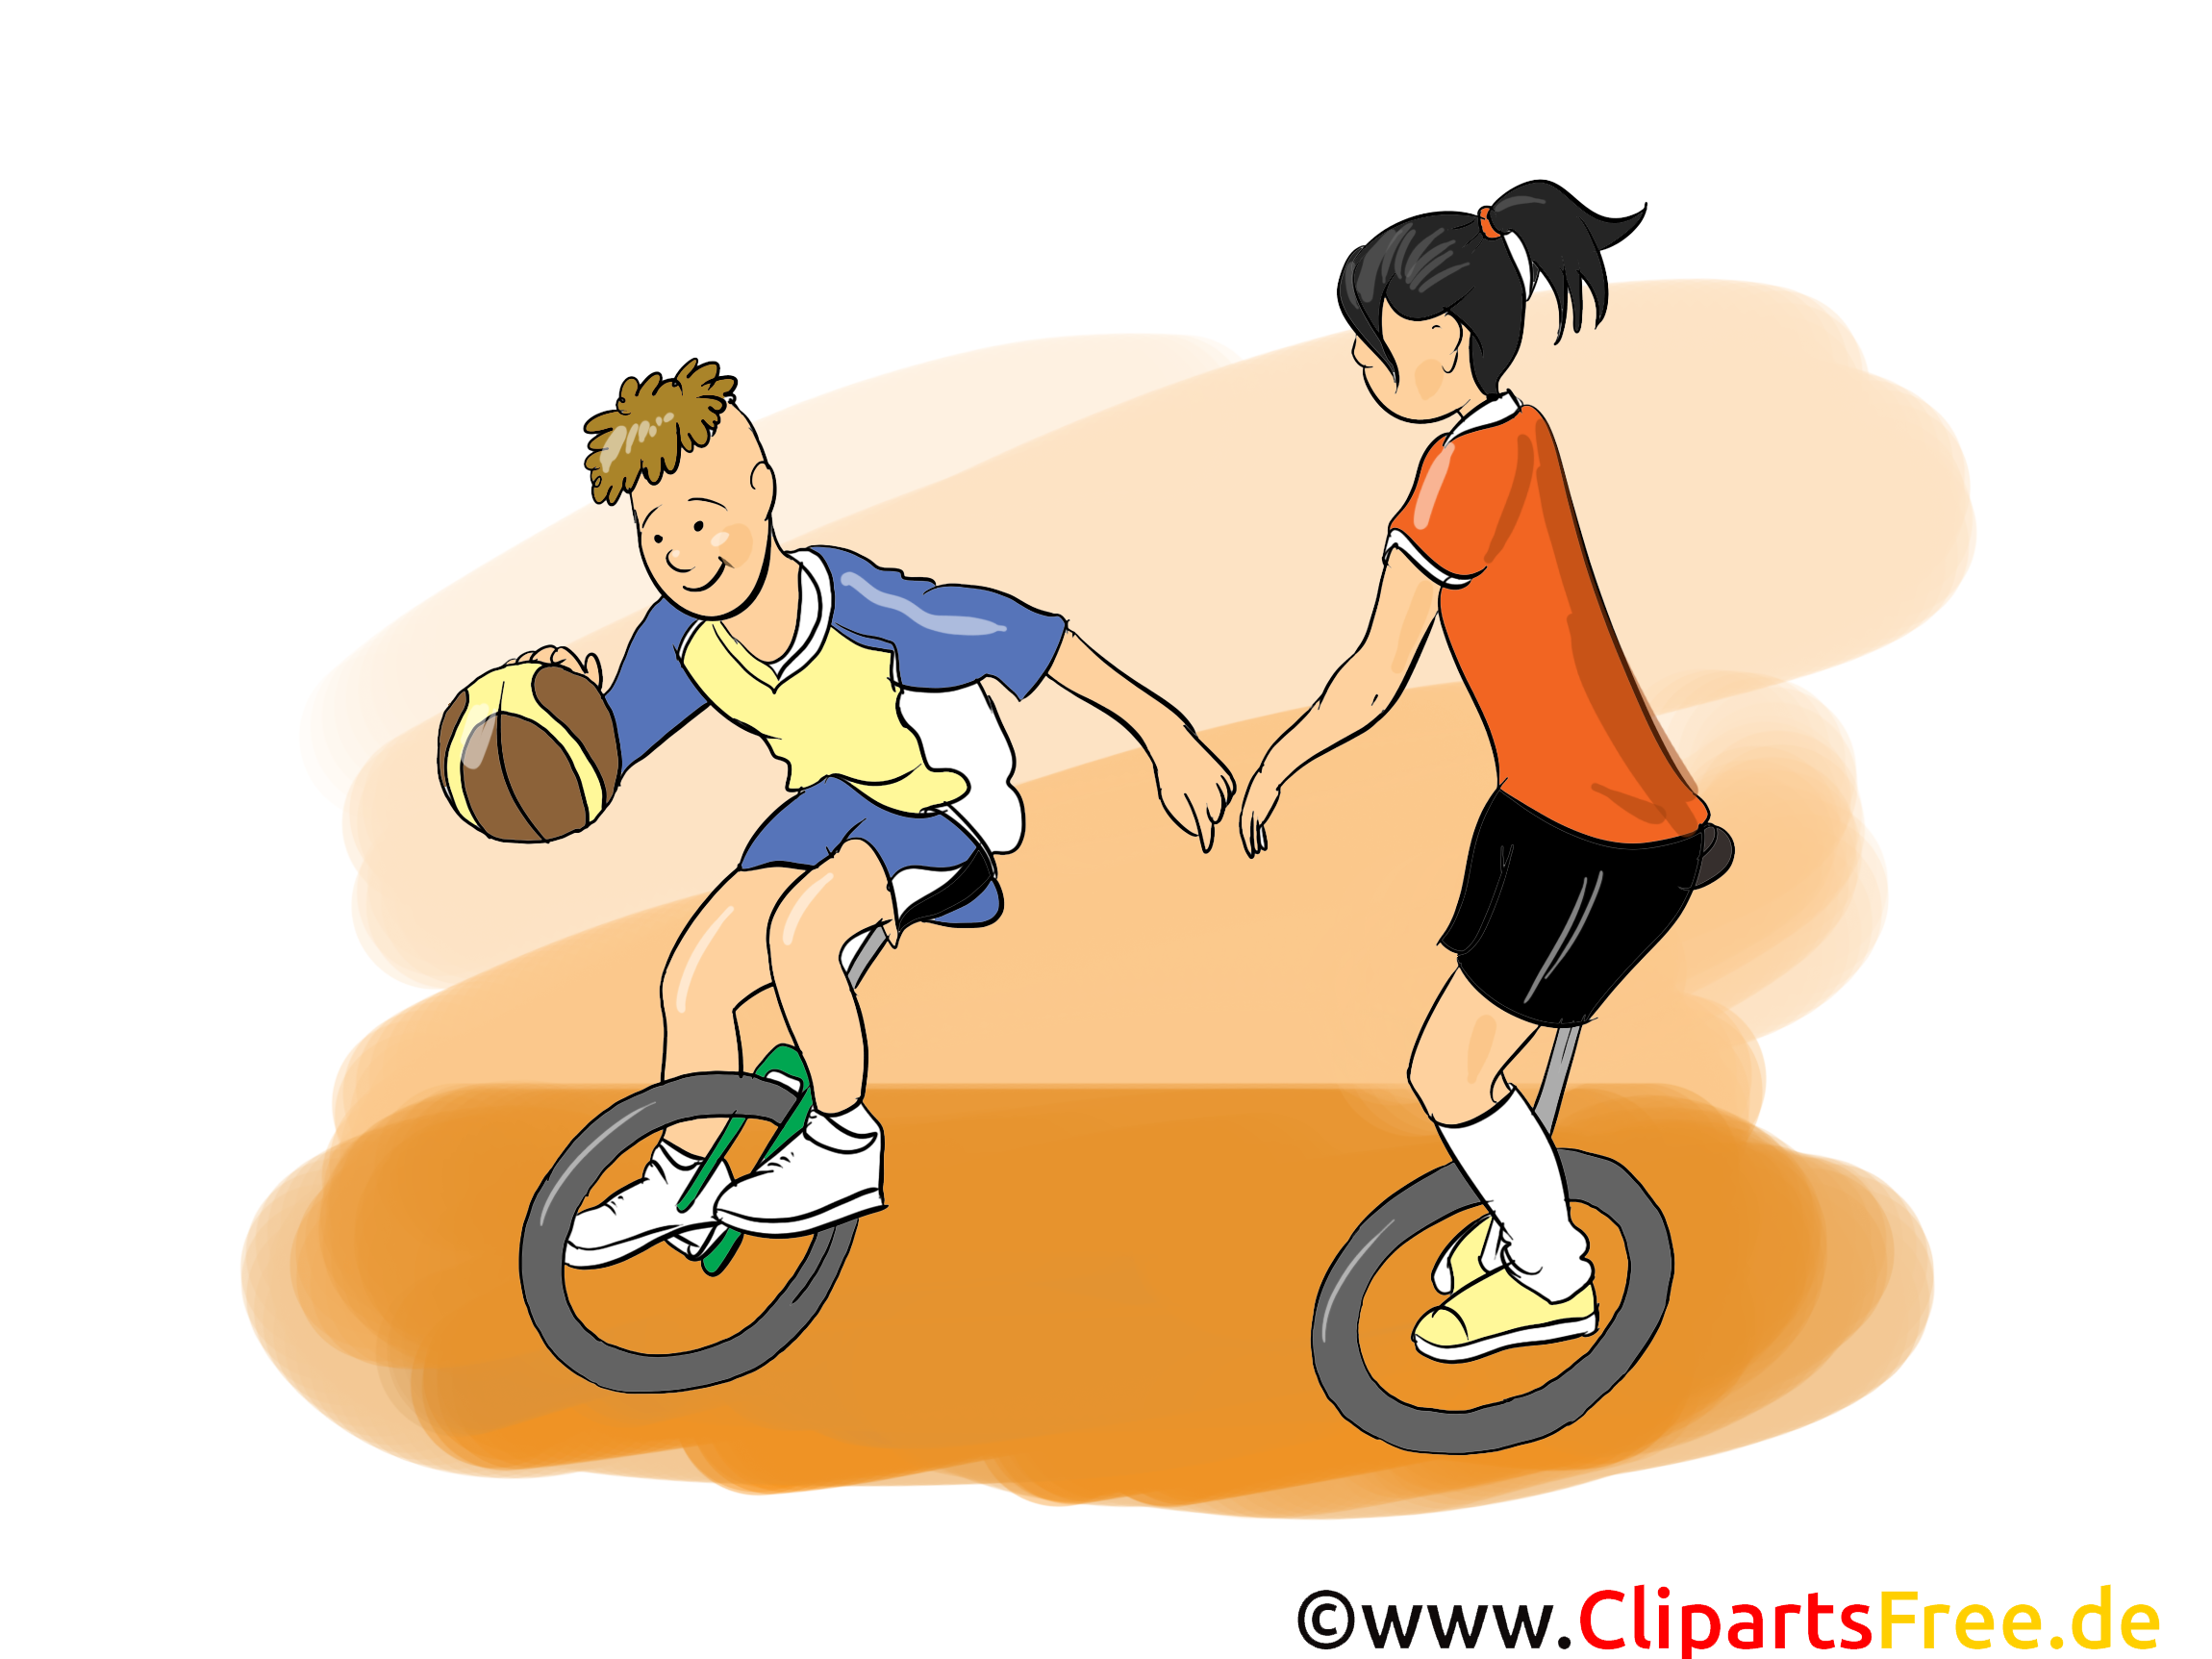 Basket-ball sur monocycle dessins gratuits